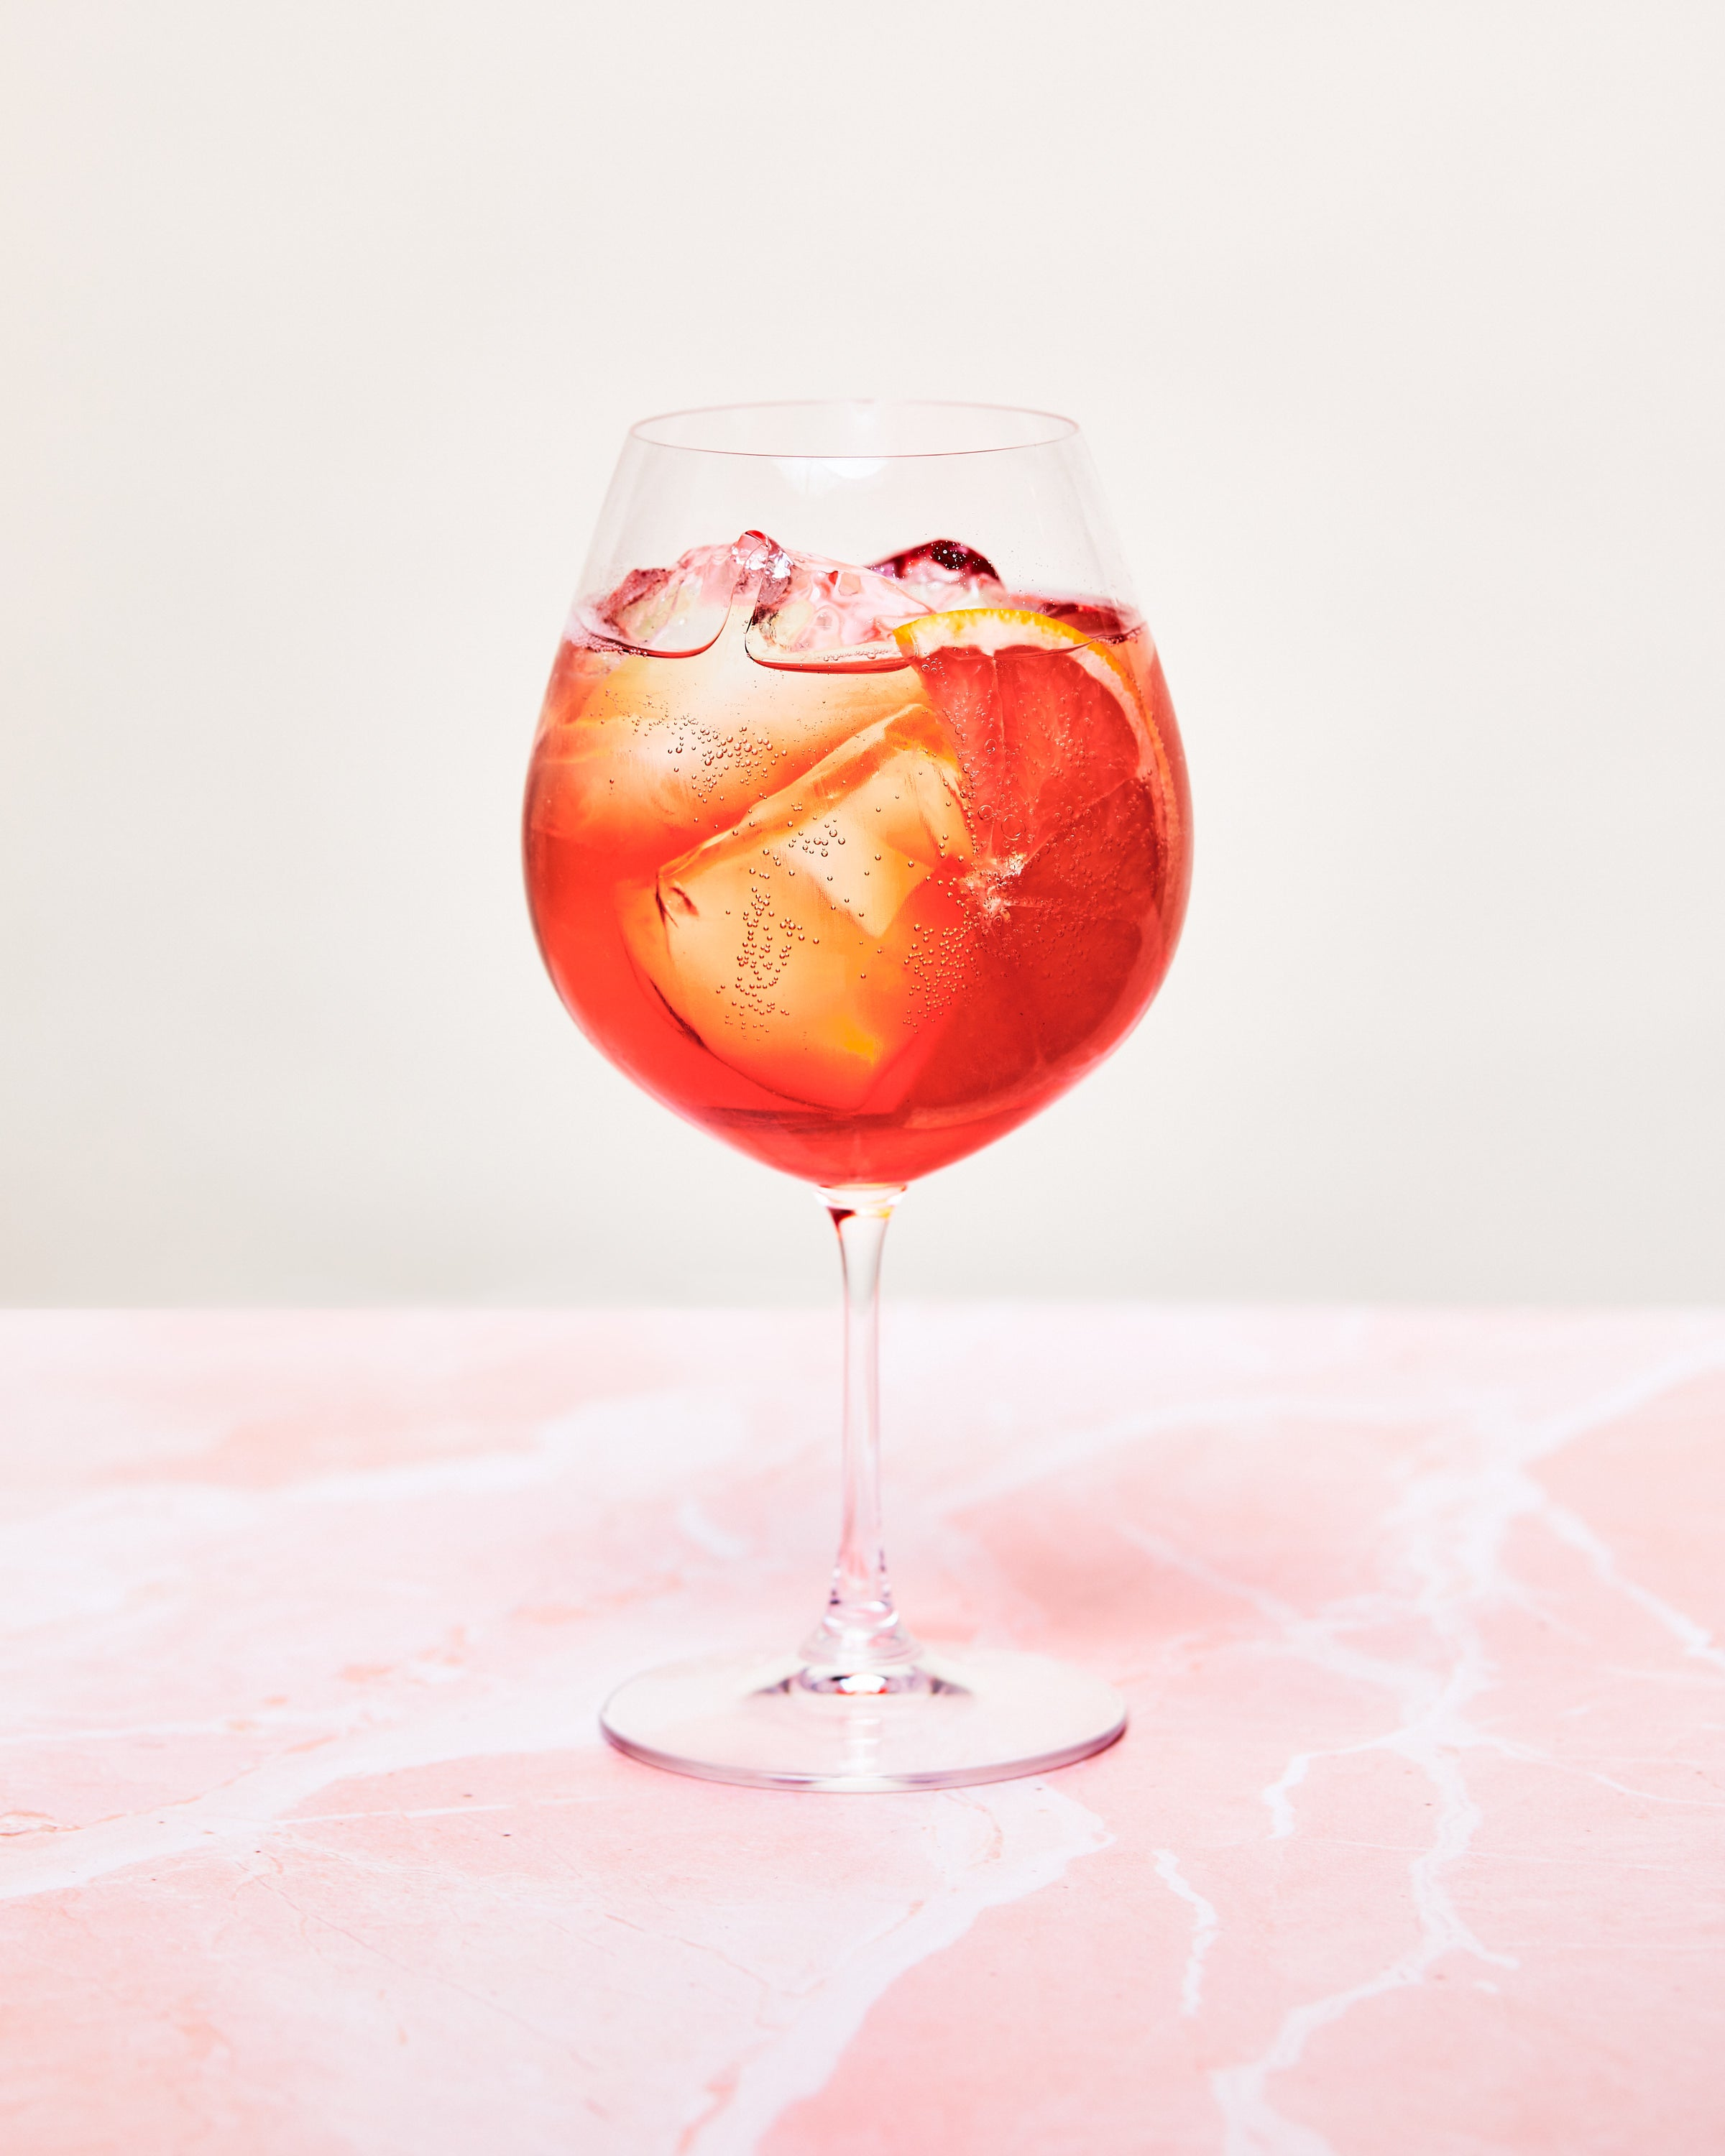 Cóctel Prosecco Pale Fox Strawberry Spritz